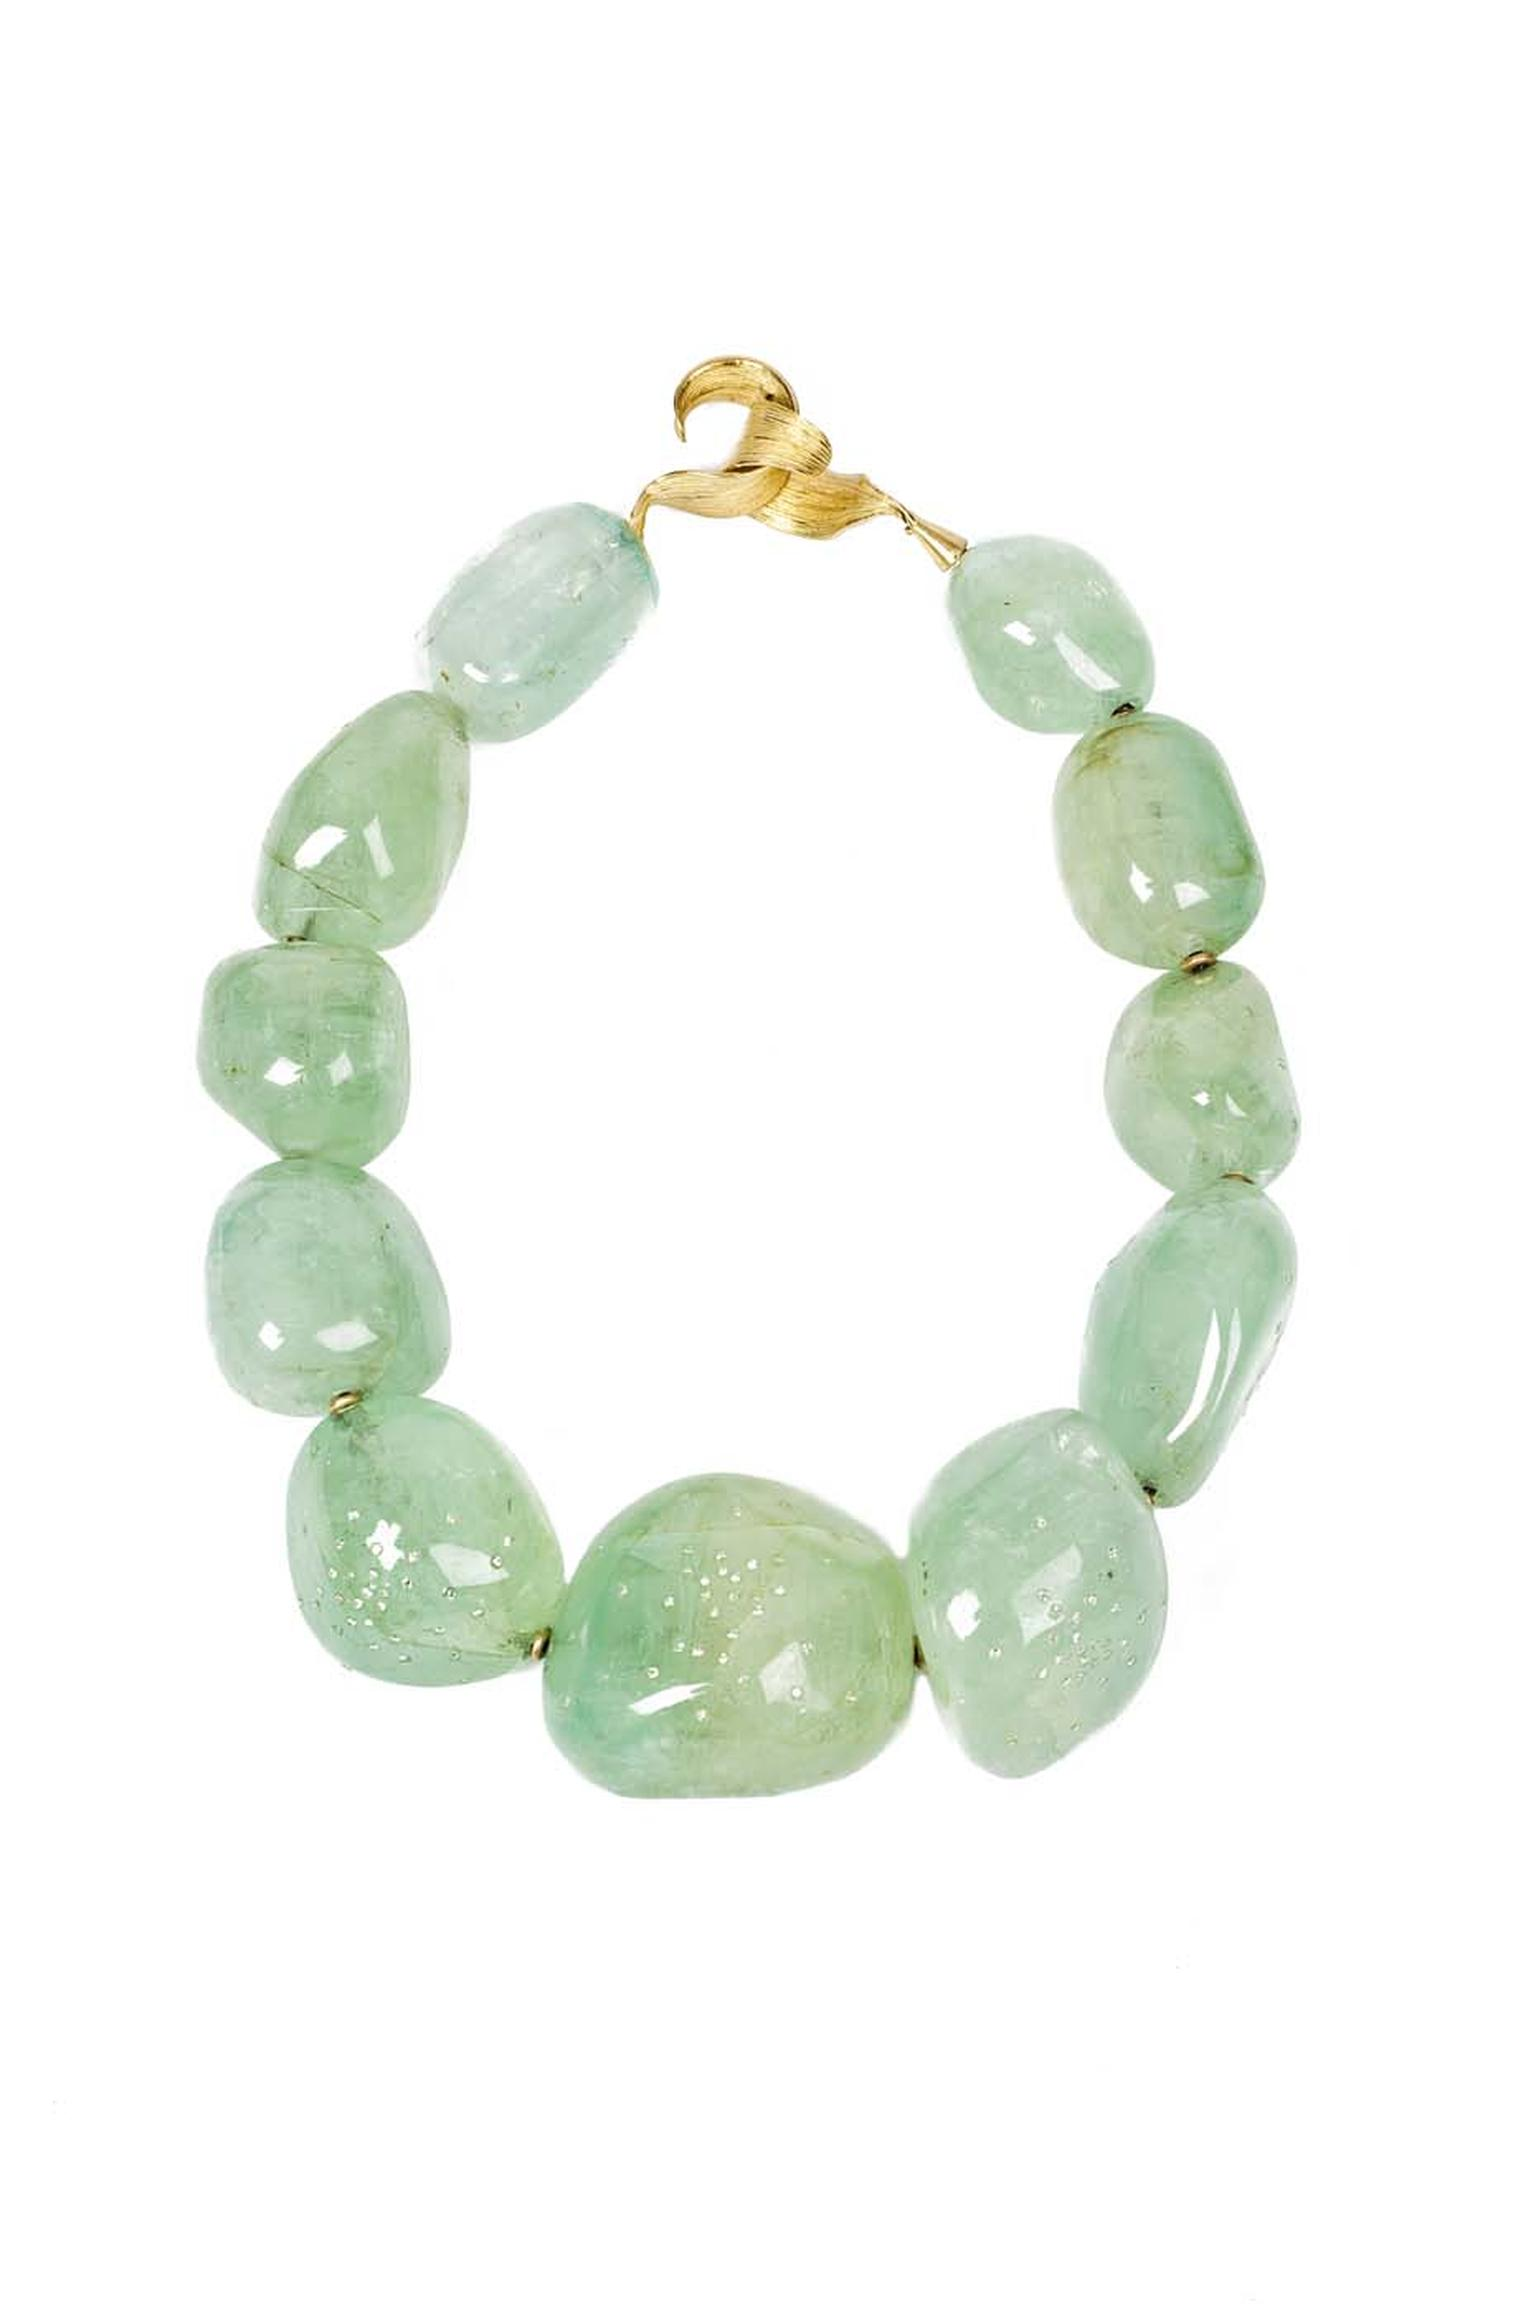 Gurmit Campbell Among Heavenly Bodies gold necklace featuring diamond encrusted pale emerald.